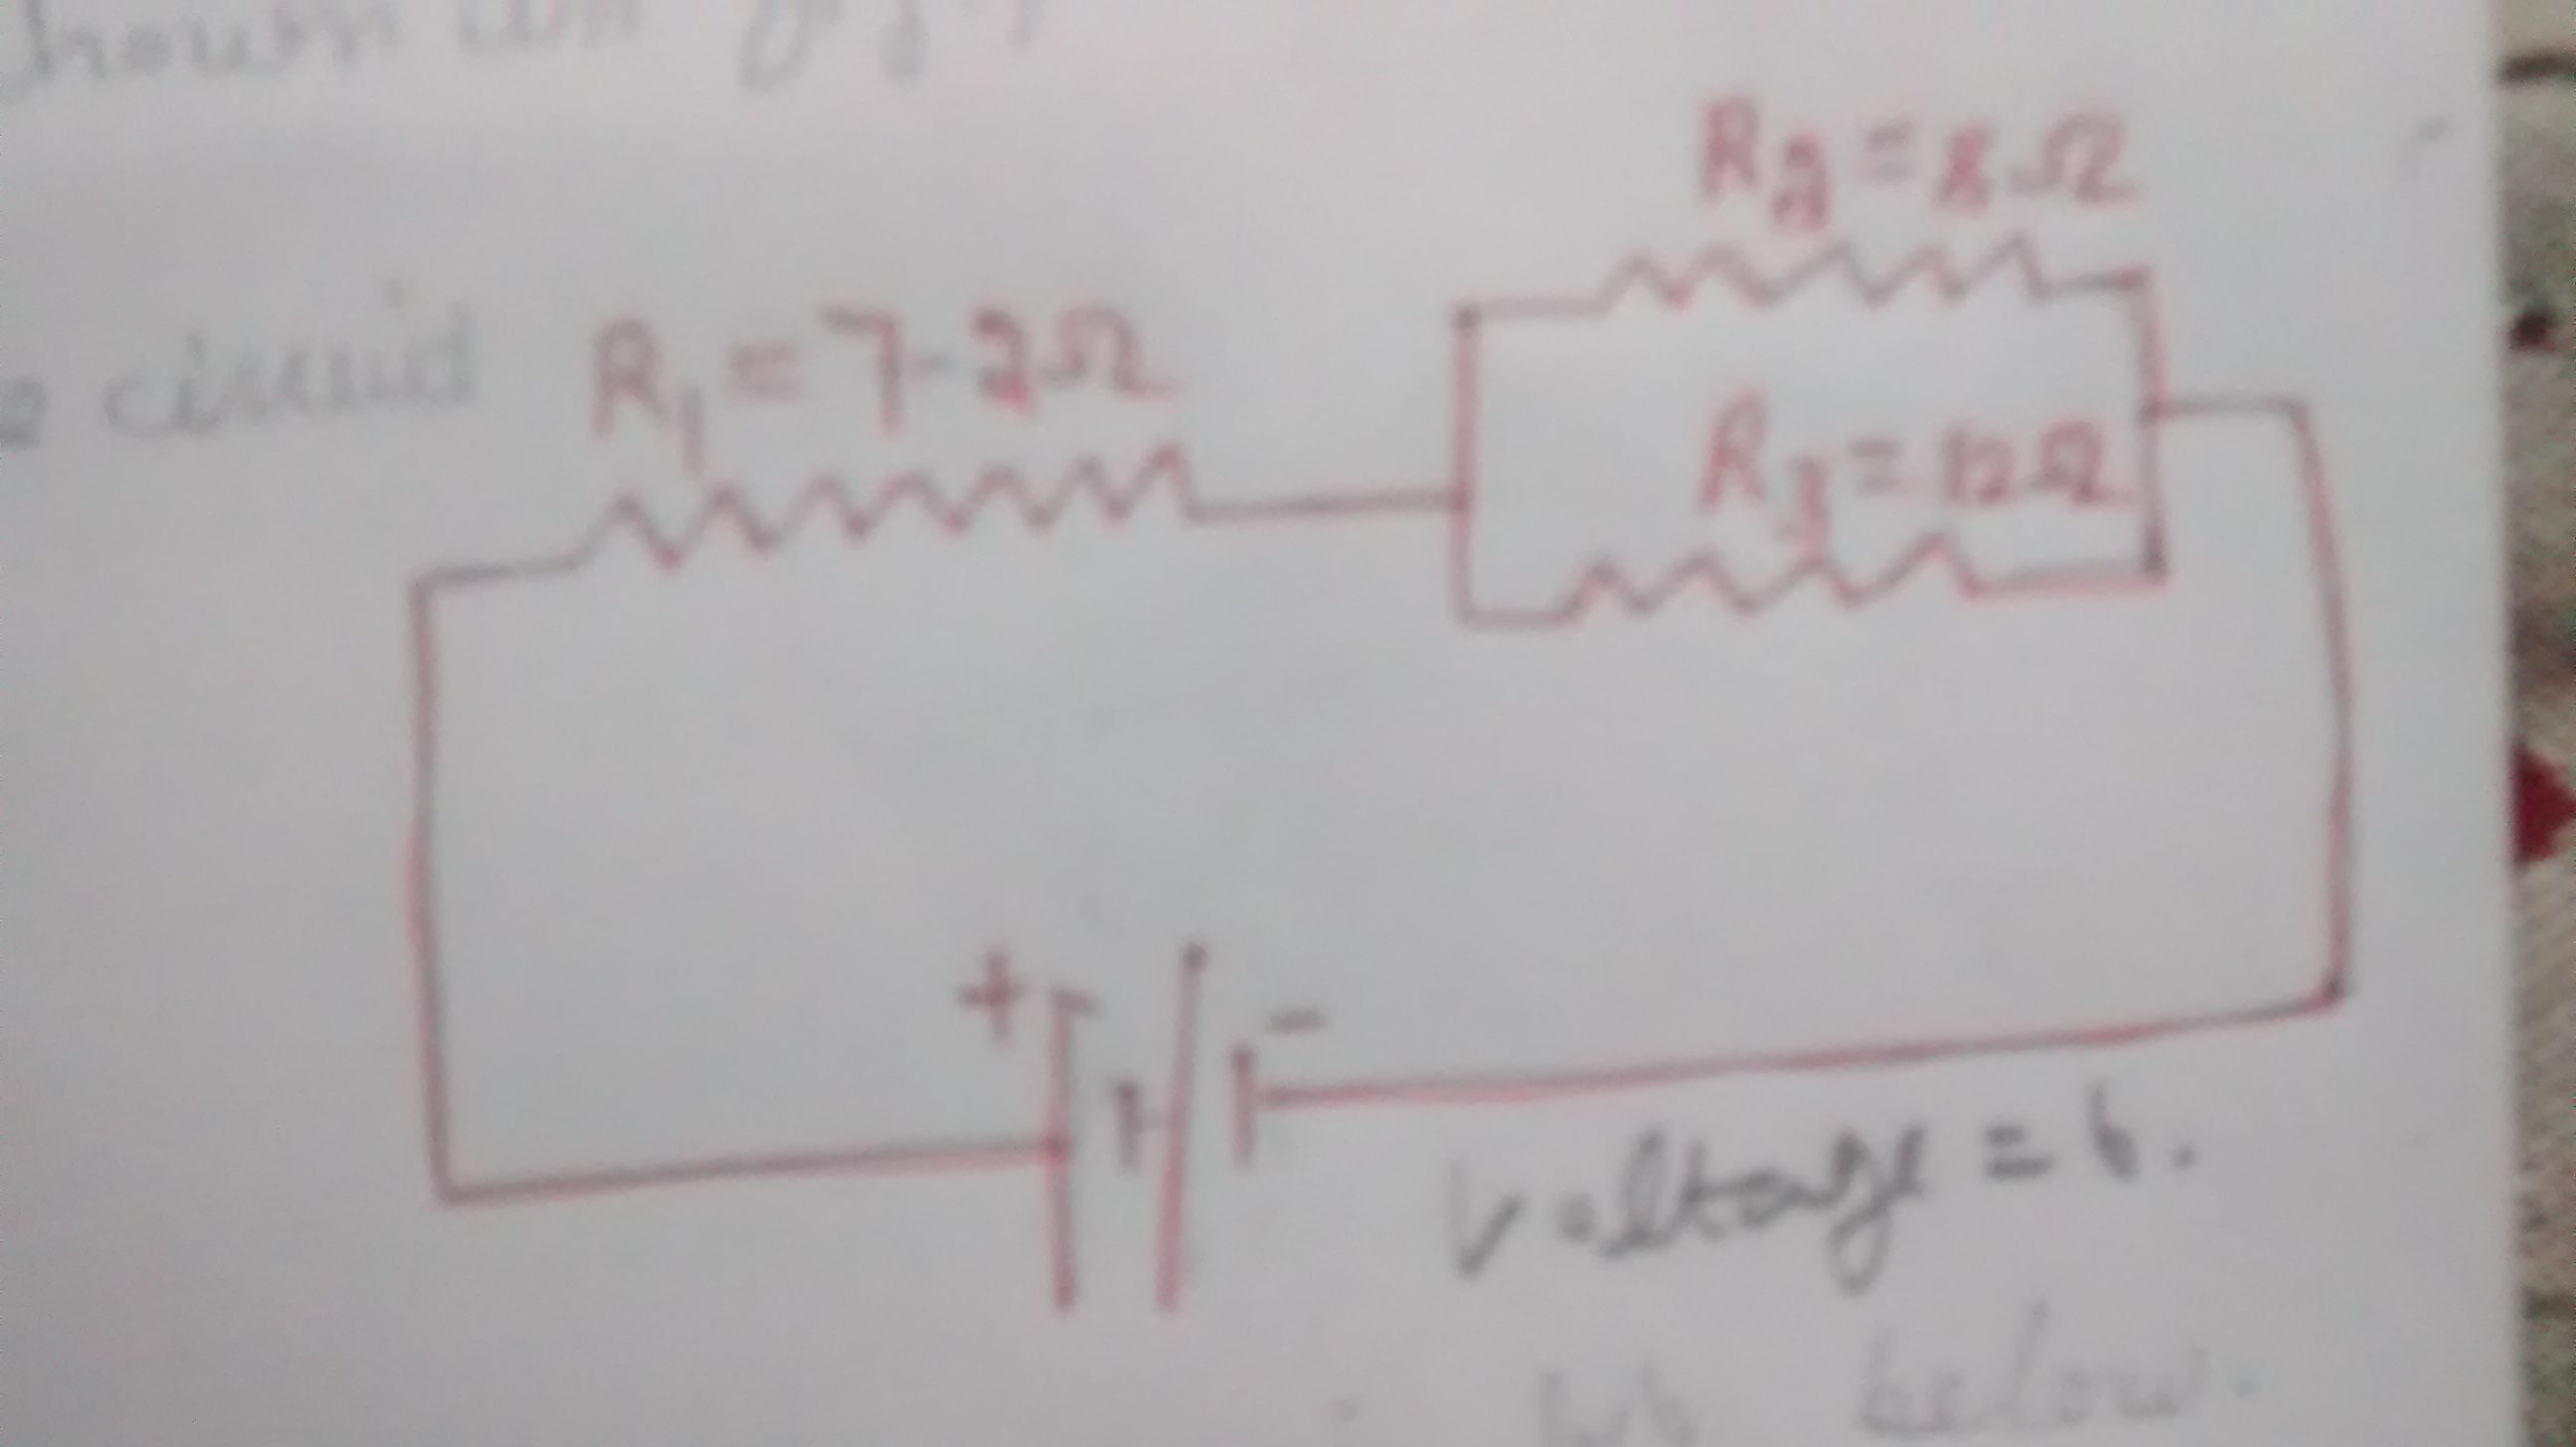 In The Circuit Diagram Shown Figure Calculate 1 Total Current Resistance A Figurecalculate Flowing Circuitiipd Across R13total Of 4pd R2 And